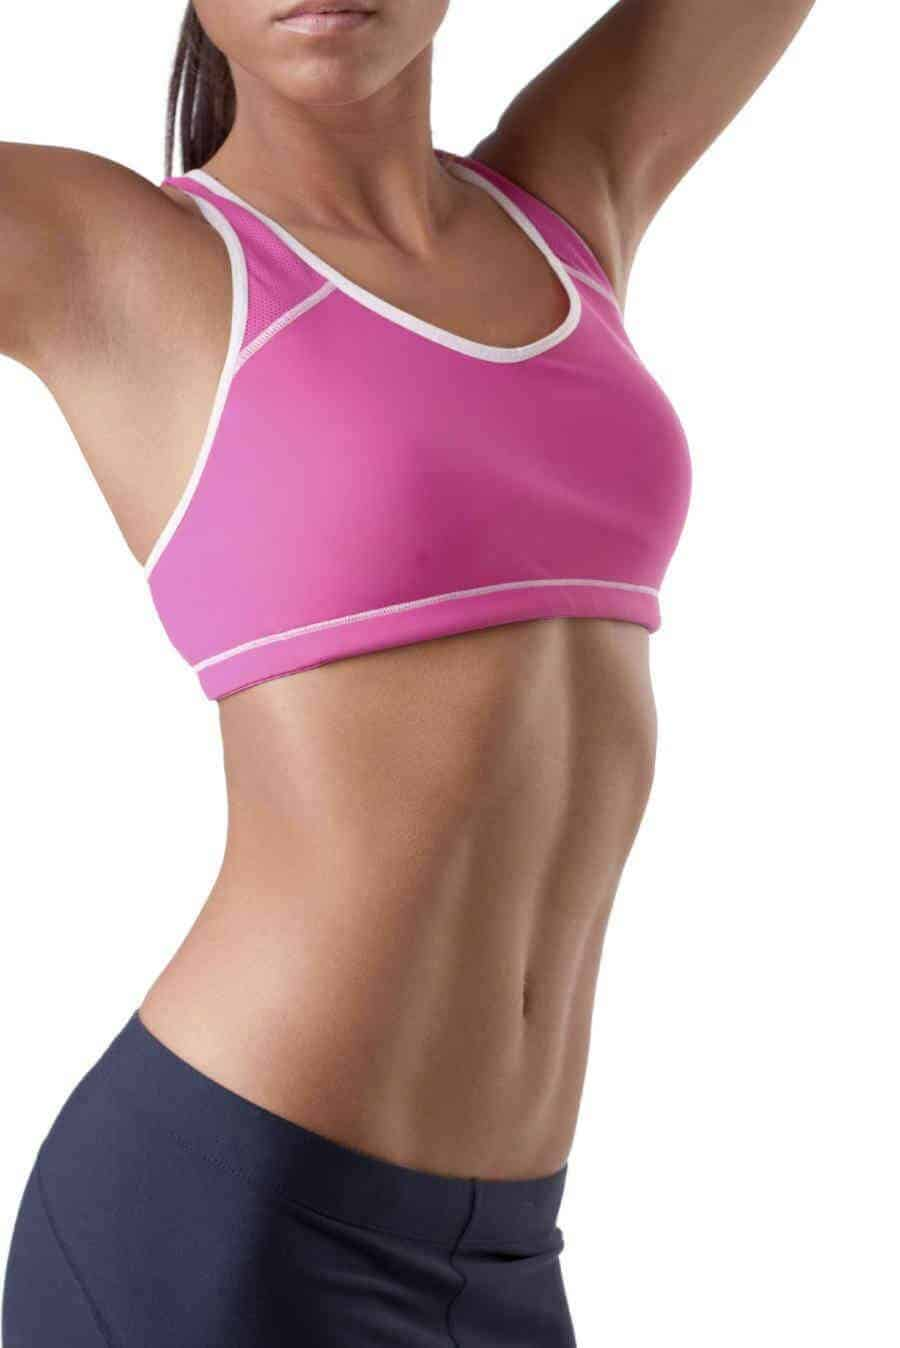 How To Lose Belly Fat For Women The Easy Way